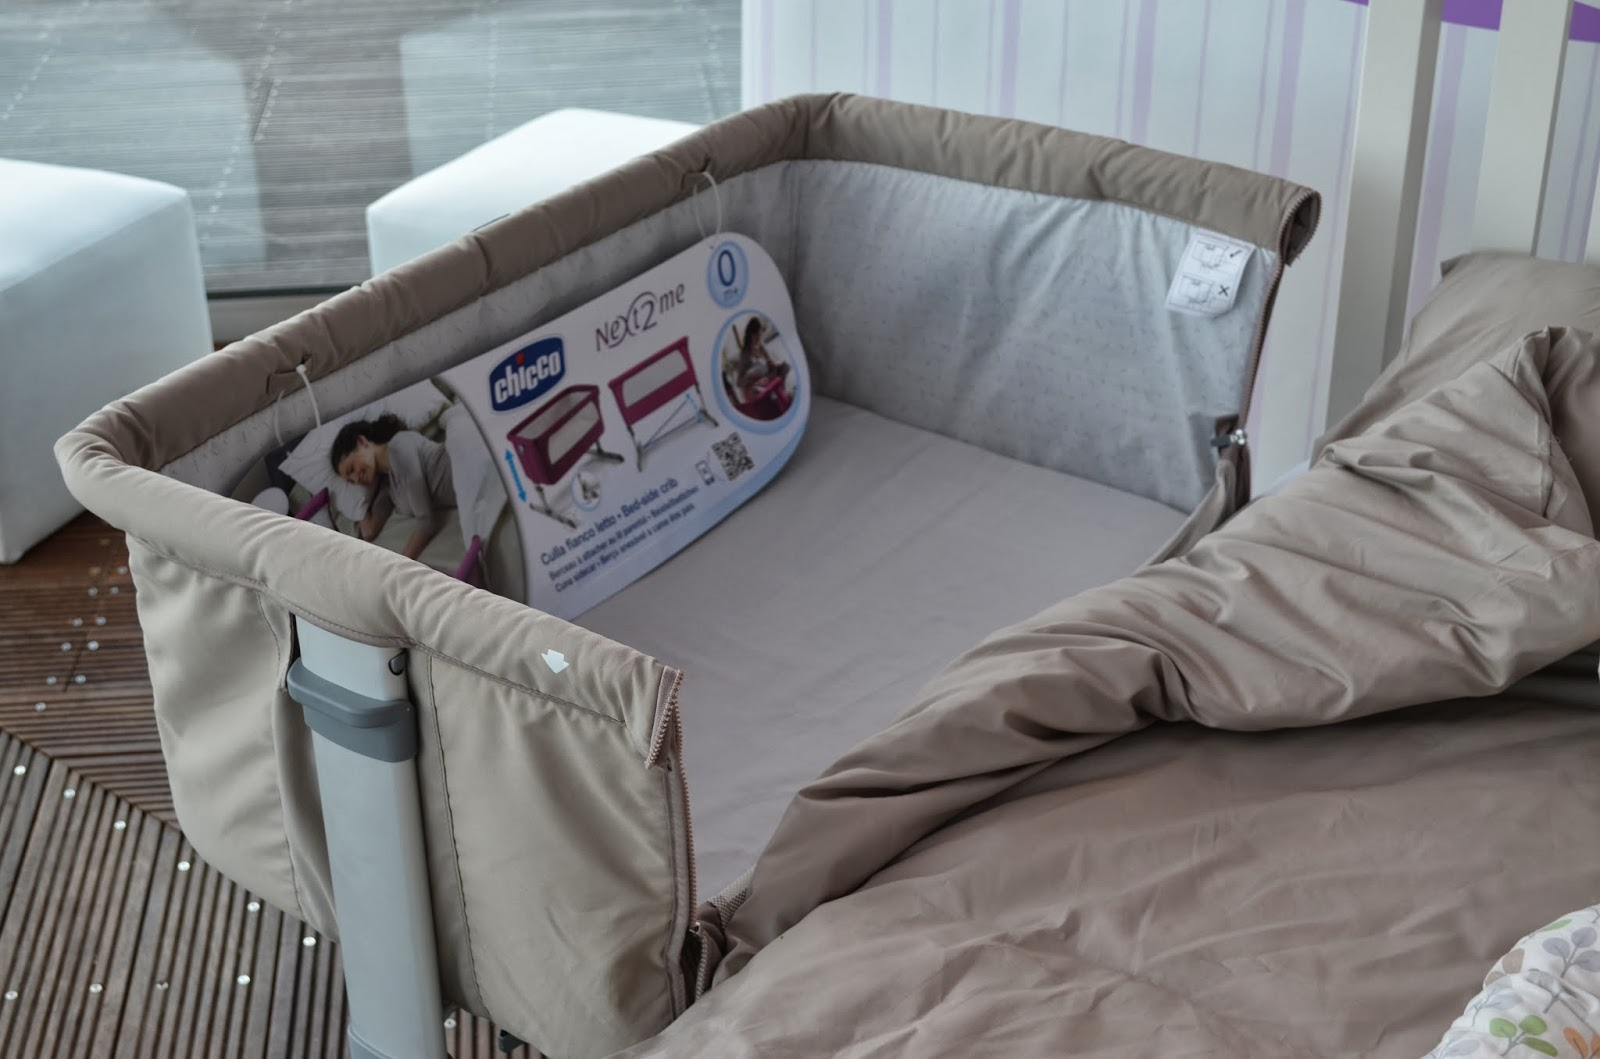 The adventure of parenthood chicco 2014 - Lettino neonato da attaccare al letto ...